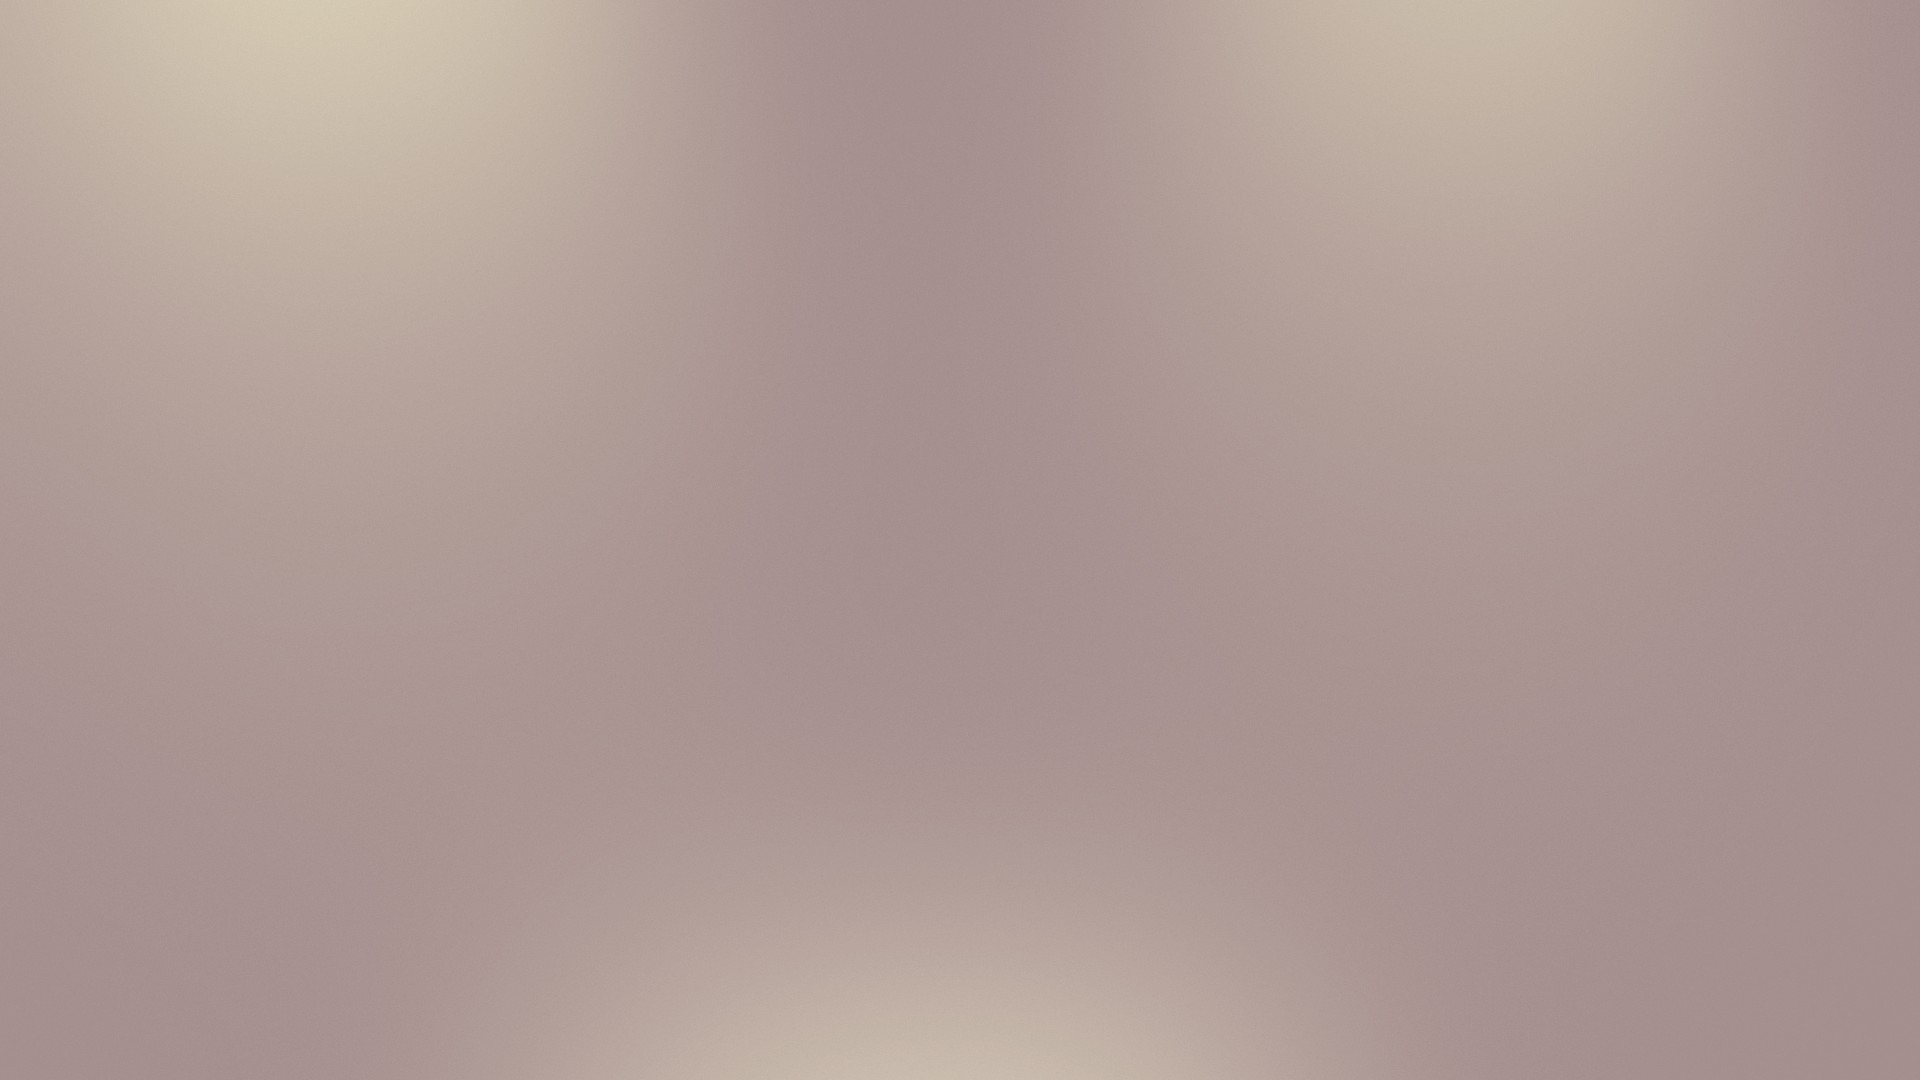 Evaluating Market Opportunity in China – Video Games